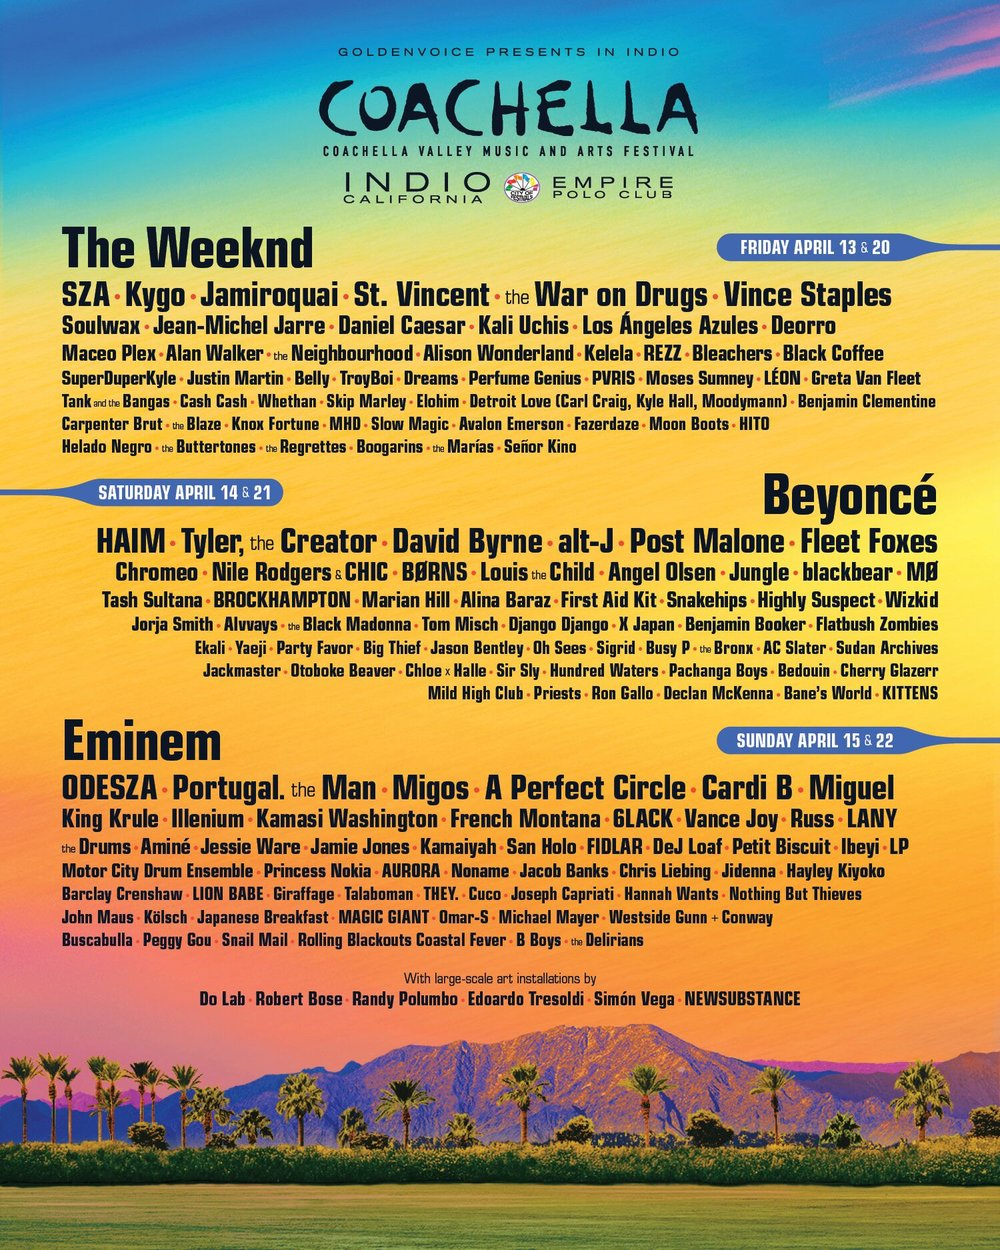 COACHELLA18_POSTER_preview-2.jpeg